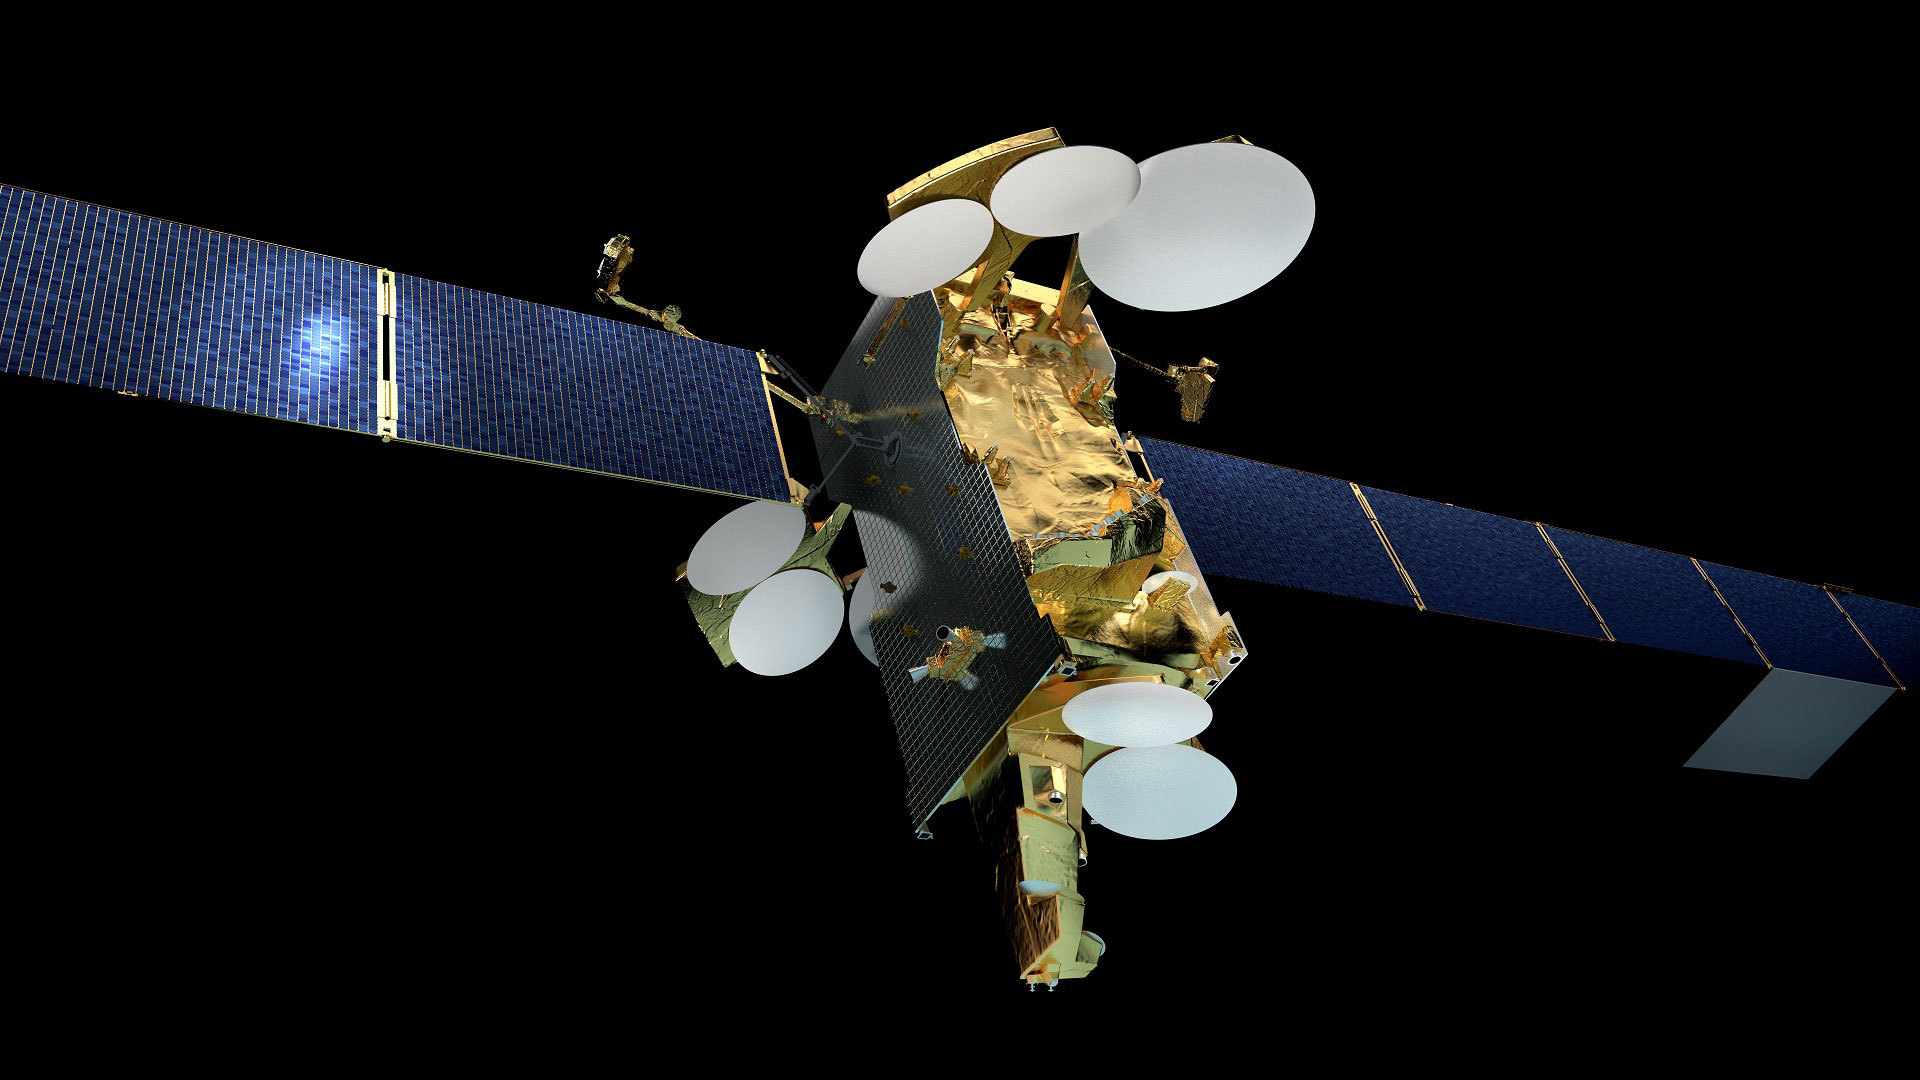 SES-12 (Photo: Business Wire)